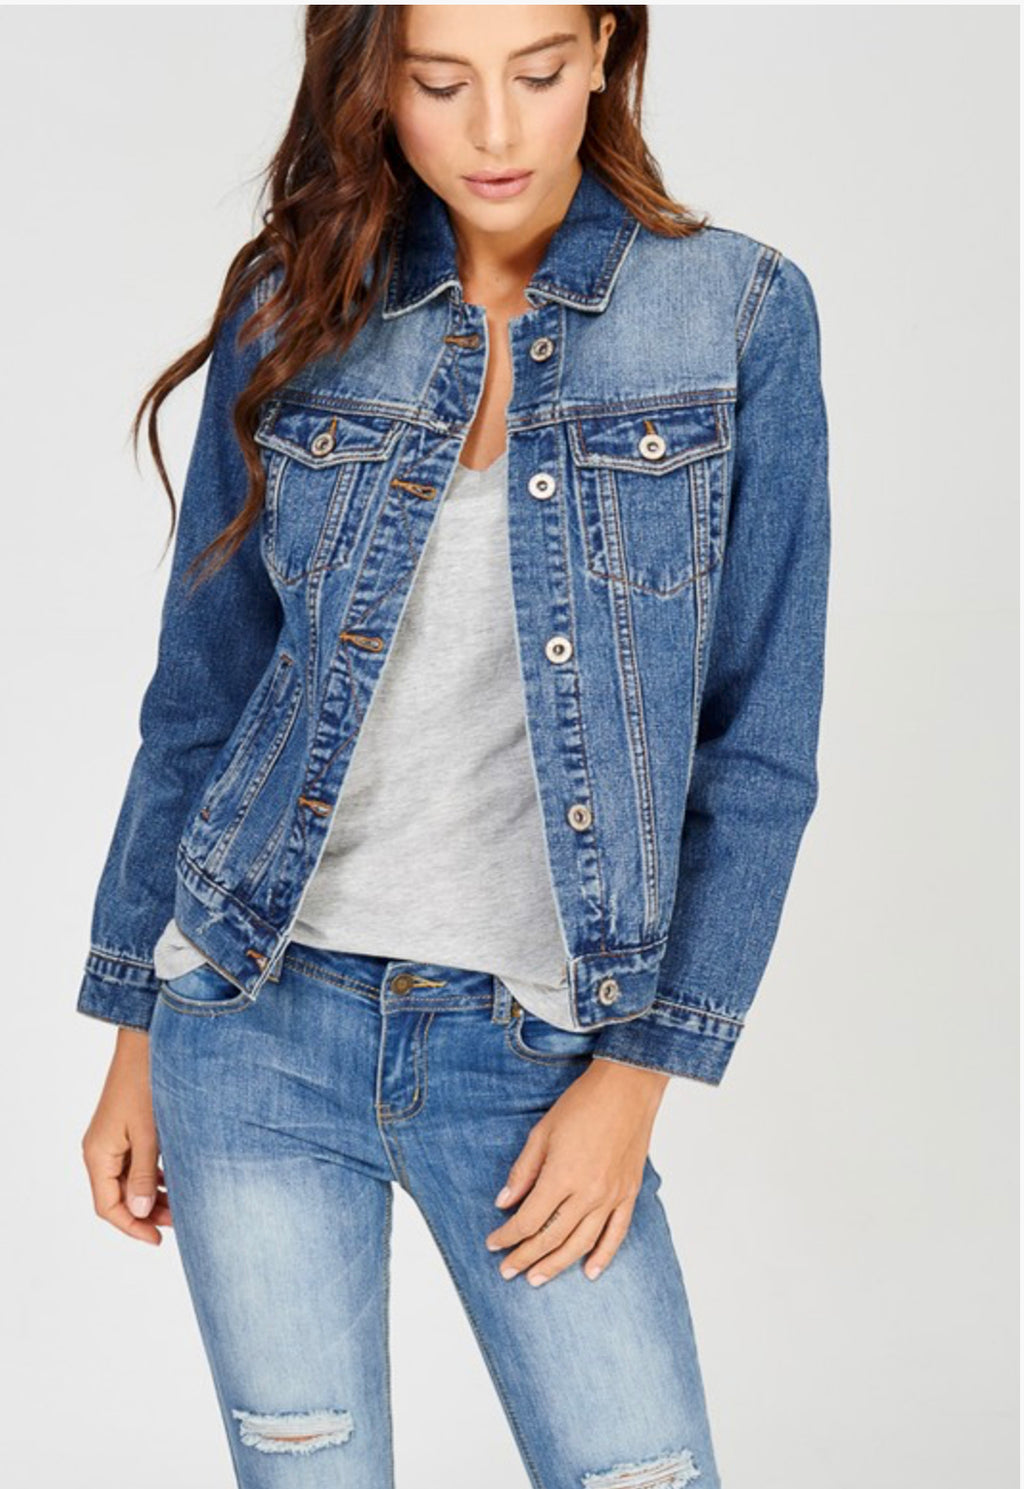 Ladies Classic Denim Jean Jacket in Medium Wash. By Wishlist